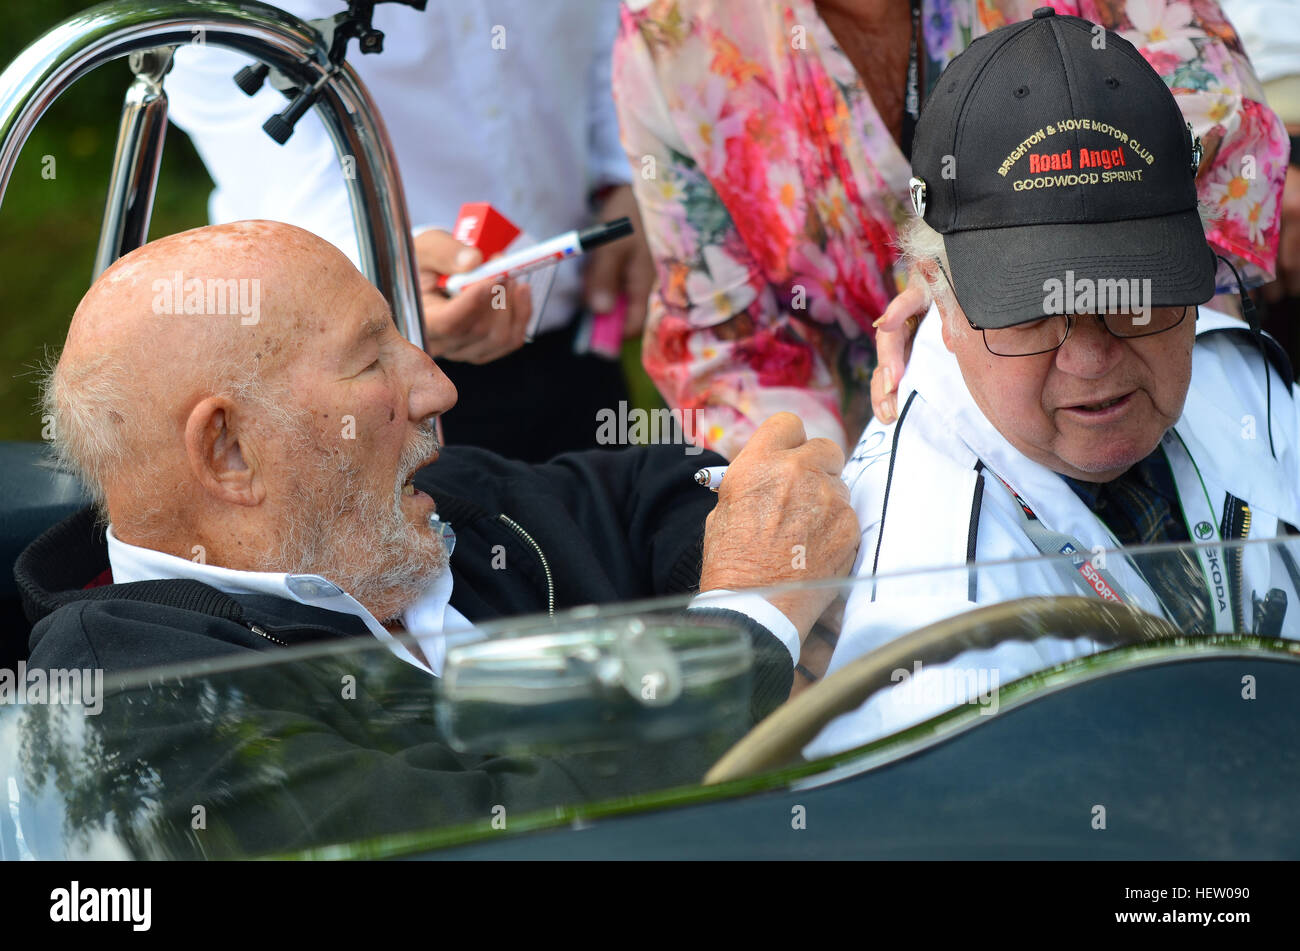 stirling-moss-at-the-2016-goodwood-festival-of-speed-at-the-wheel-HEW090.jpg